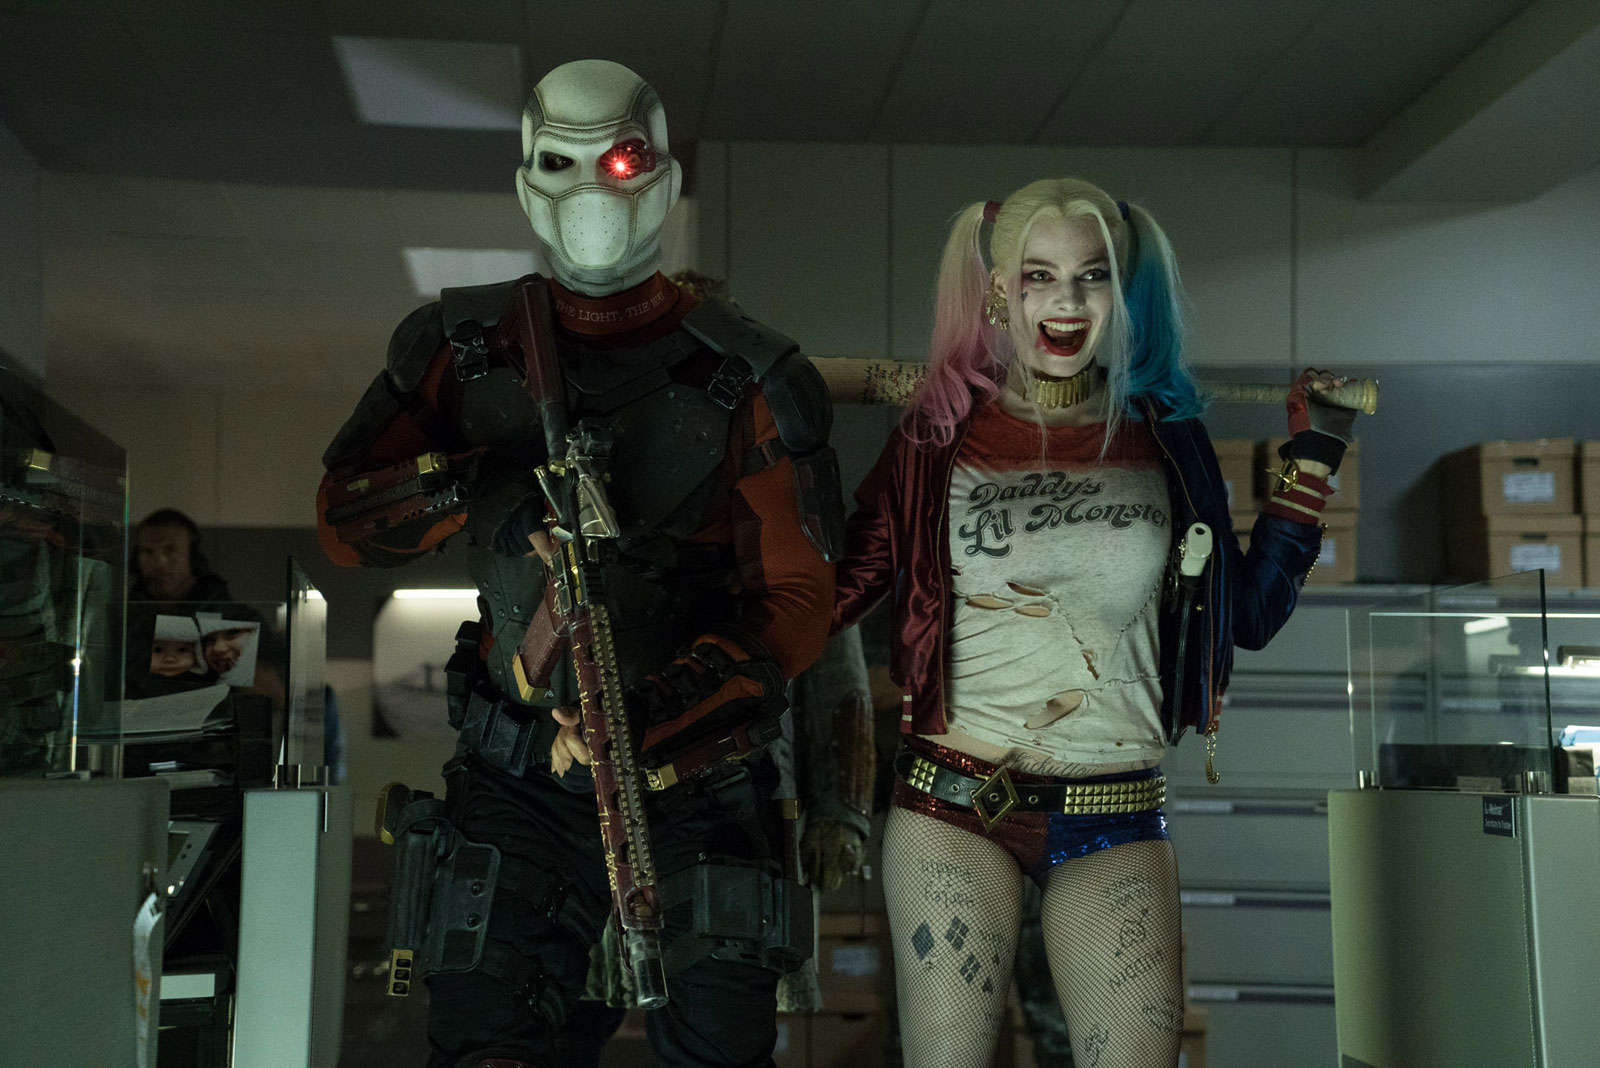 Deadshot and Harley